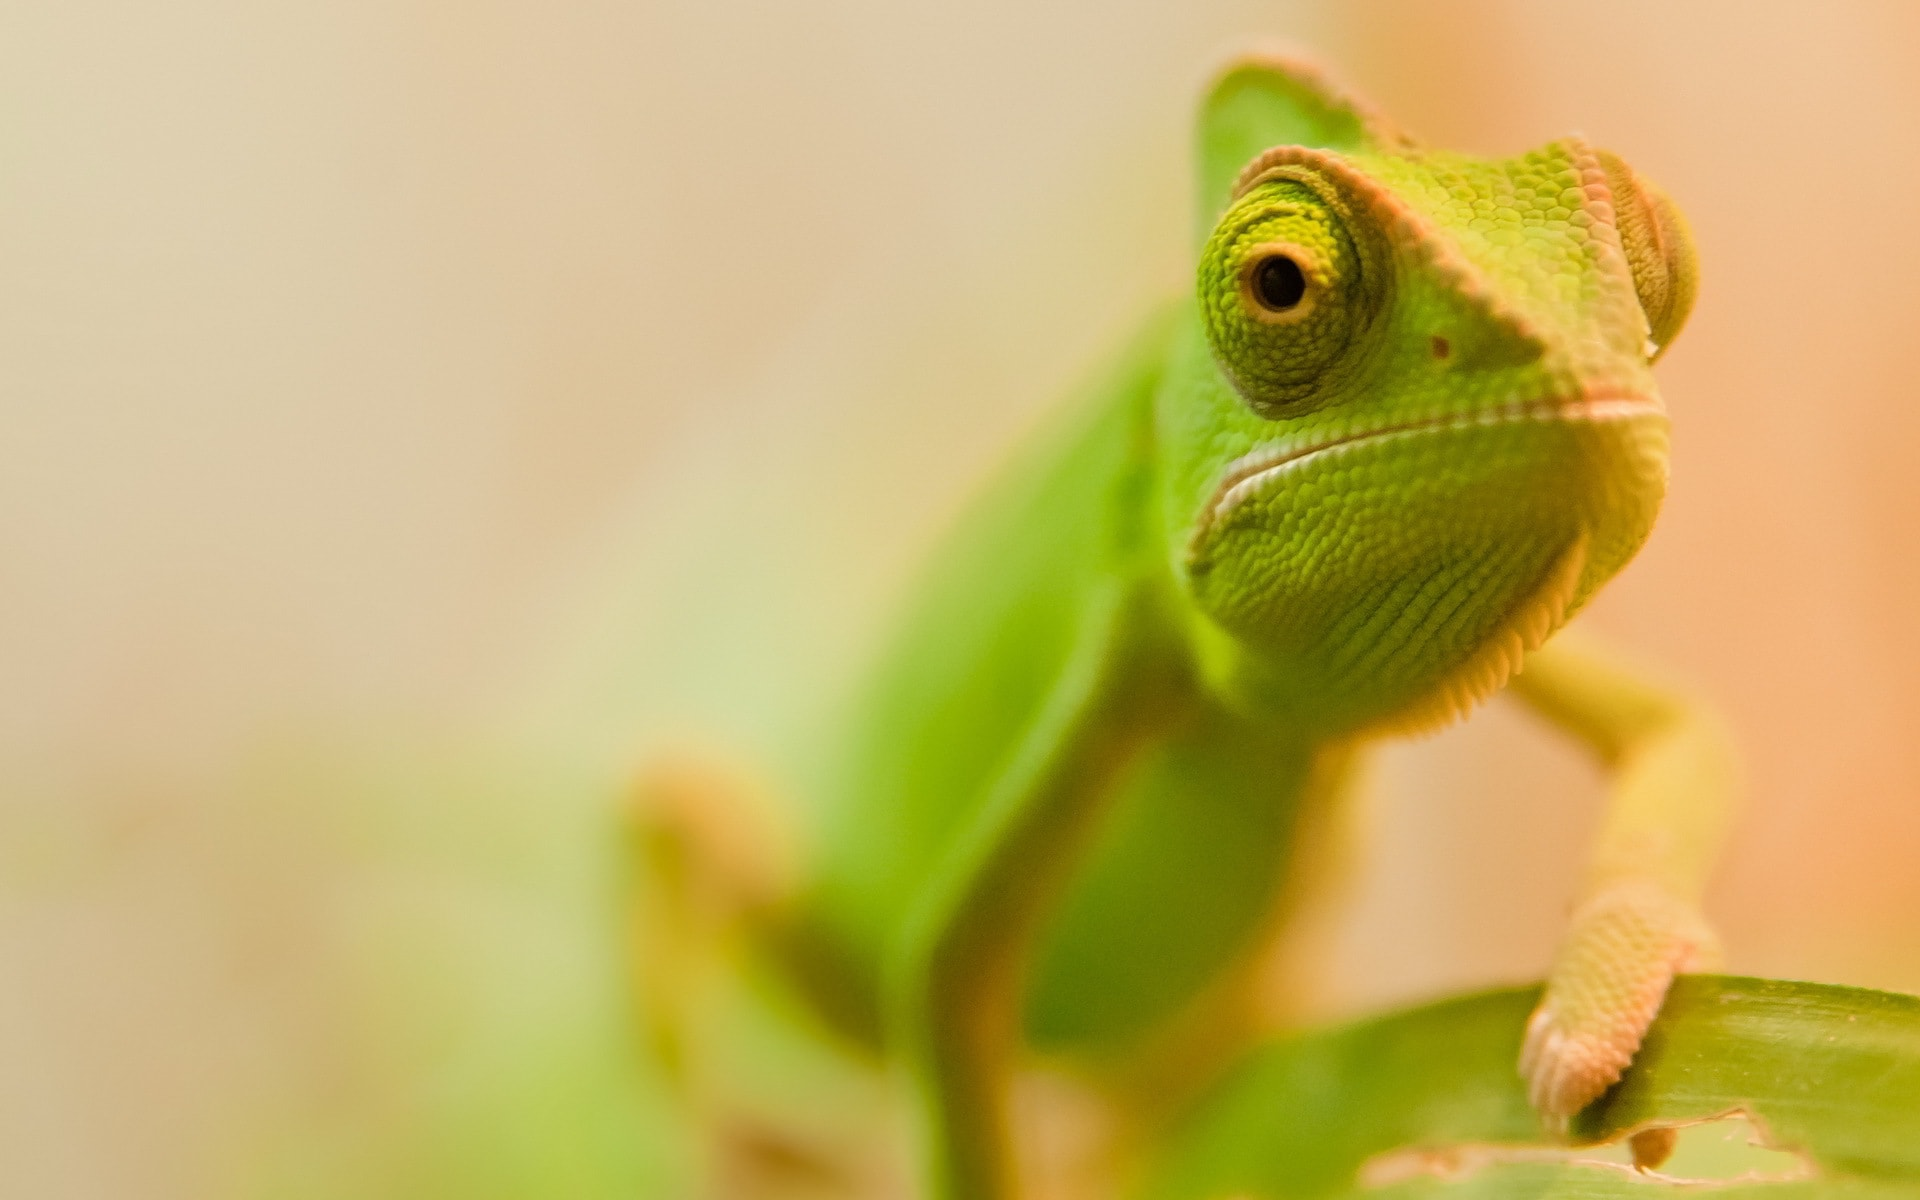 Chameleon Full hd wallpapers